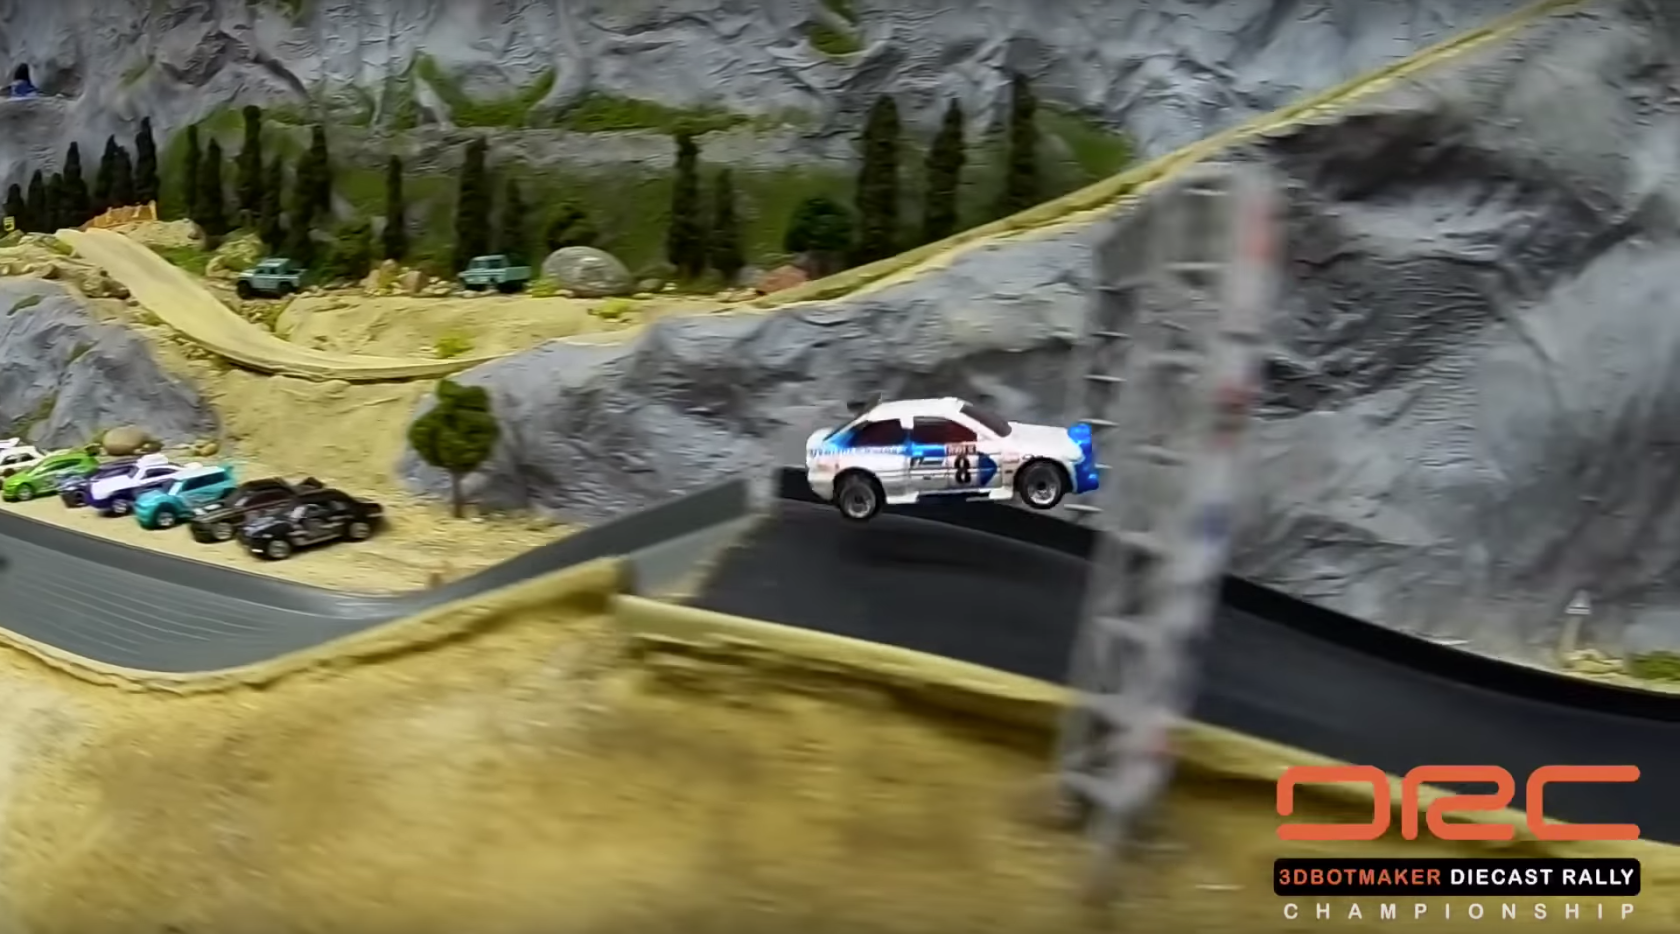 These 'Diecast Rally Championship' Videos Are Way Too Good